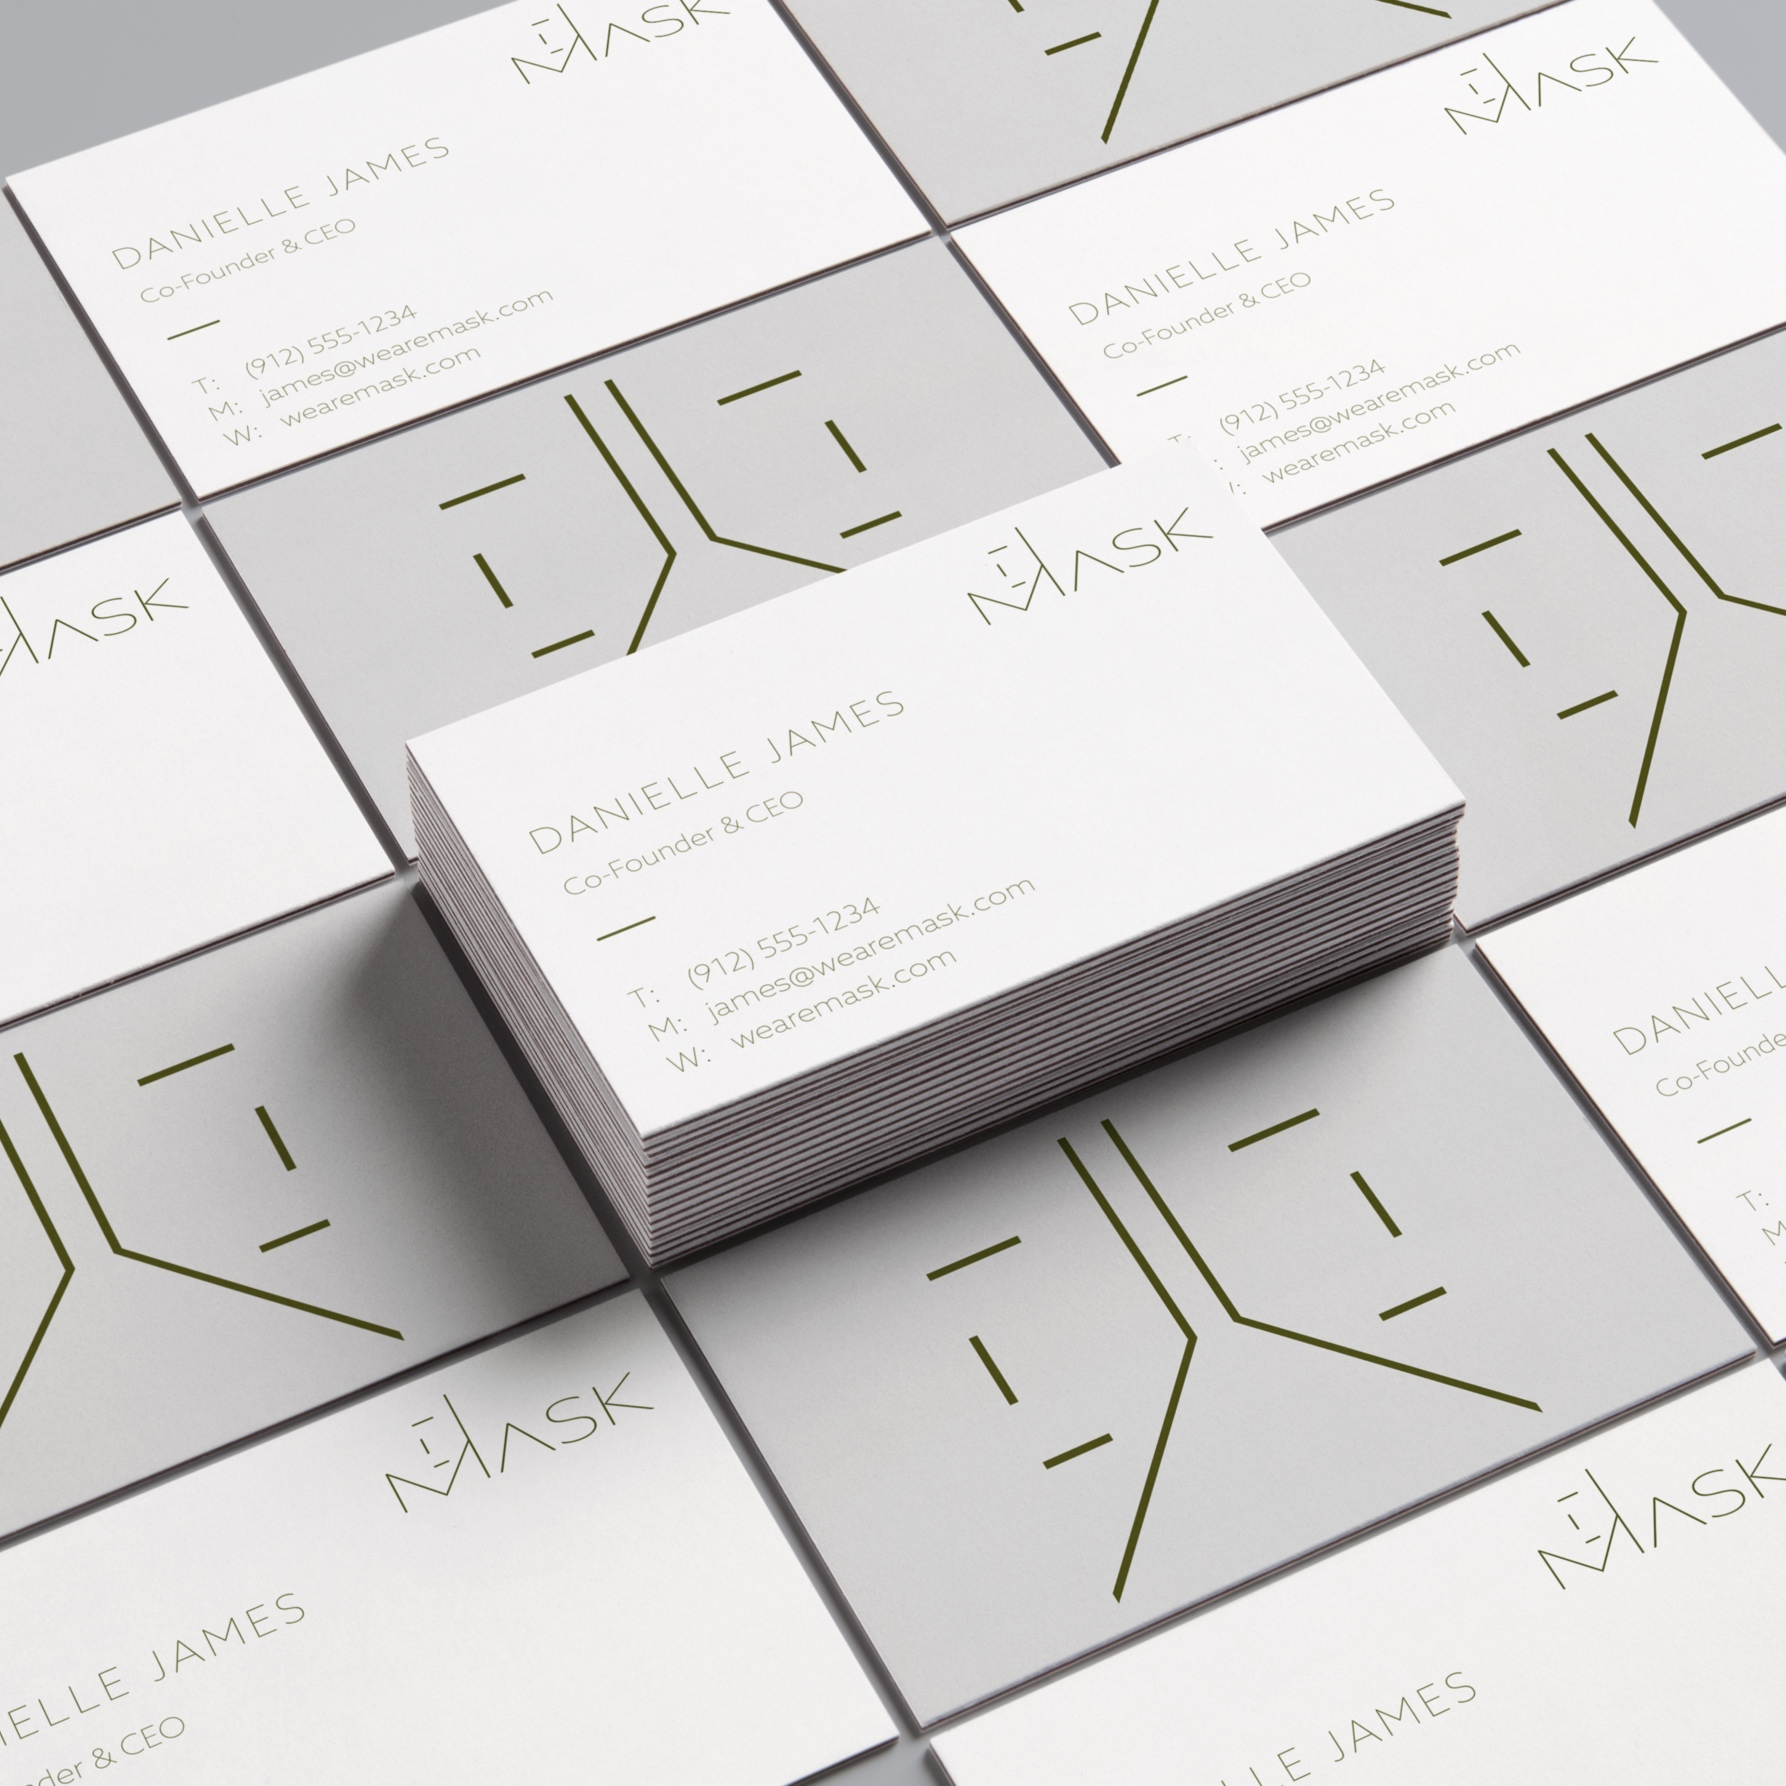 Perspective+Business+Cards+MockUp+2.jpg